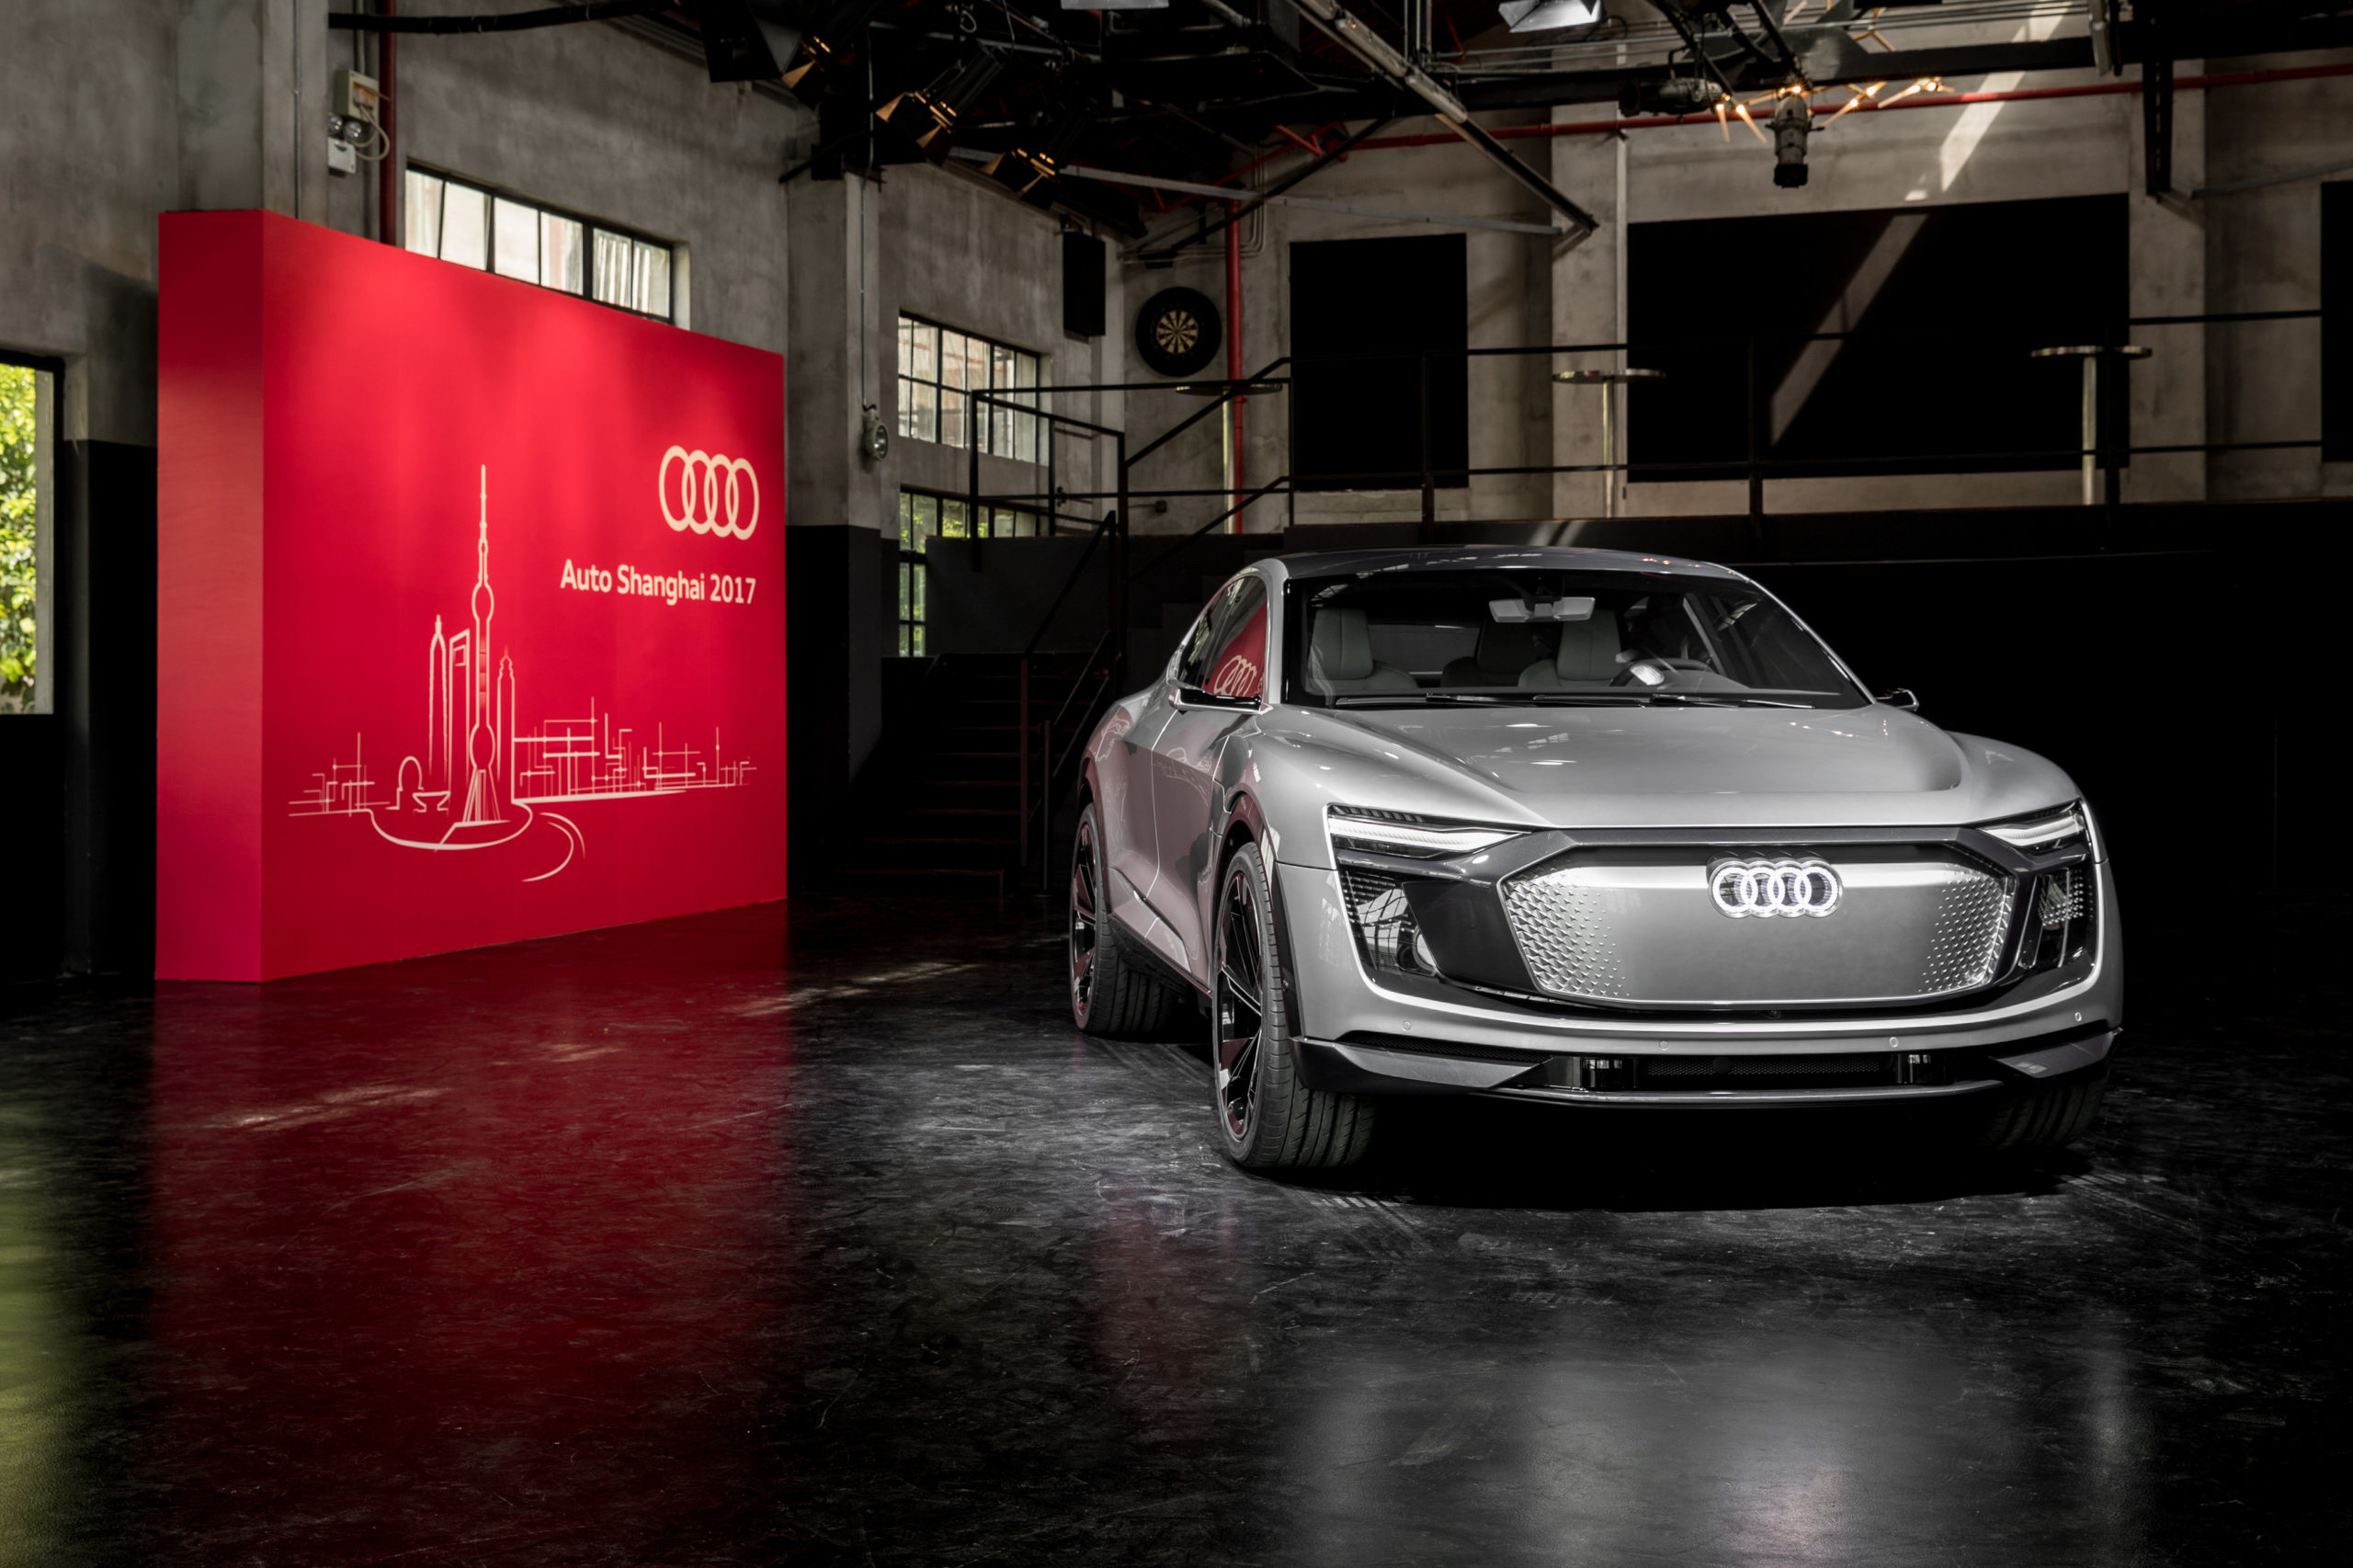 Photo of the Audi e-tron Sportback concept world premiere, Shanghai 2017.